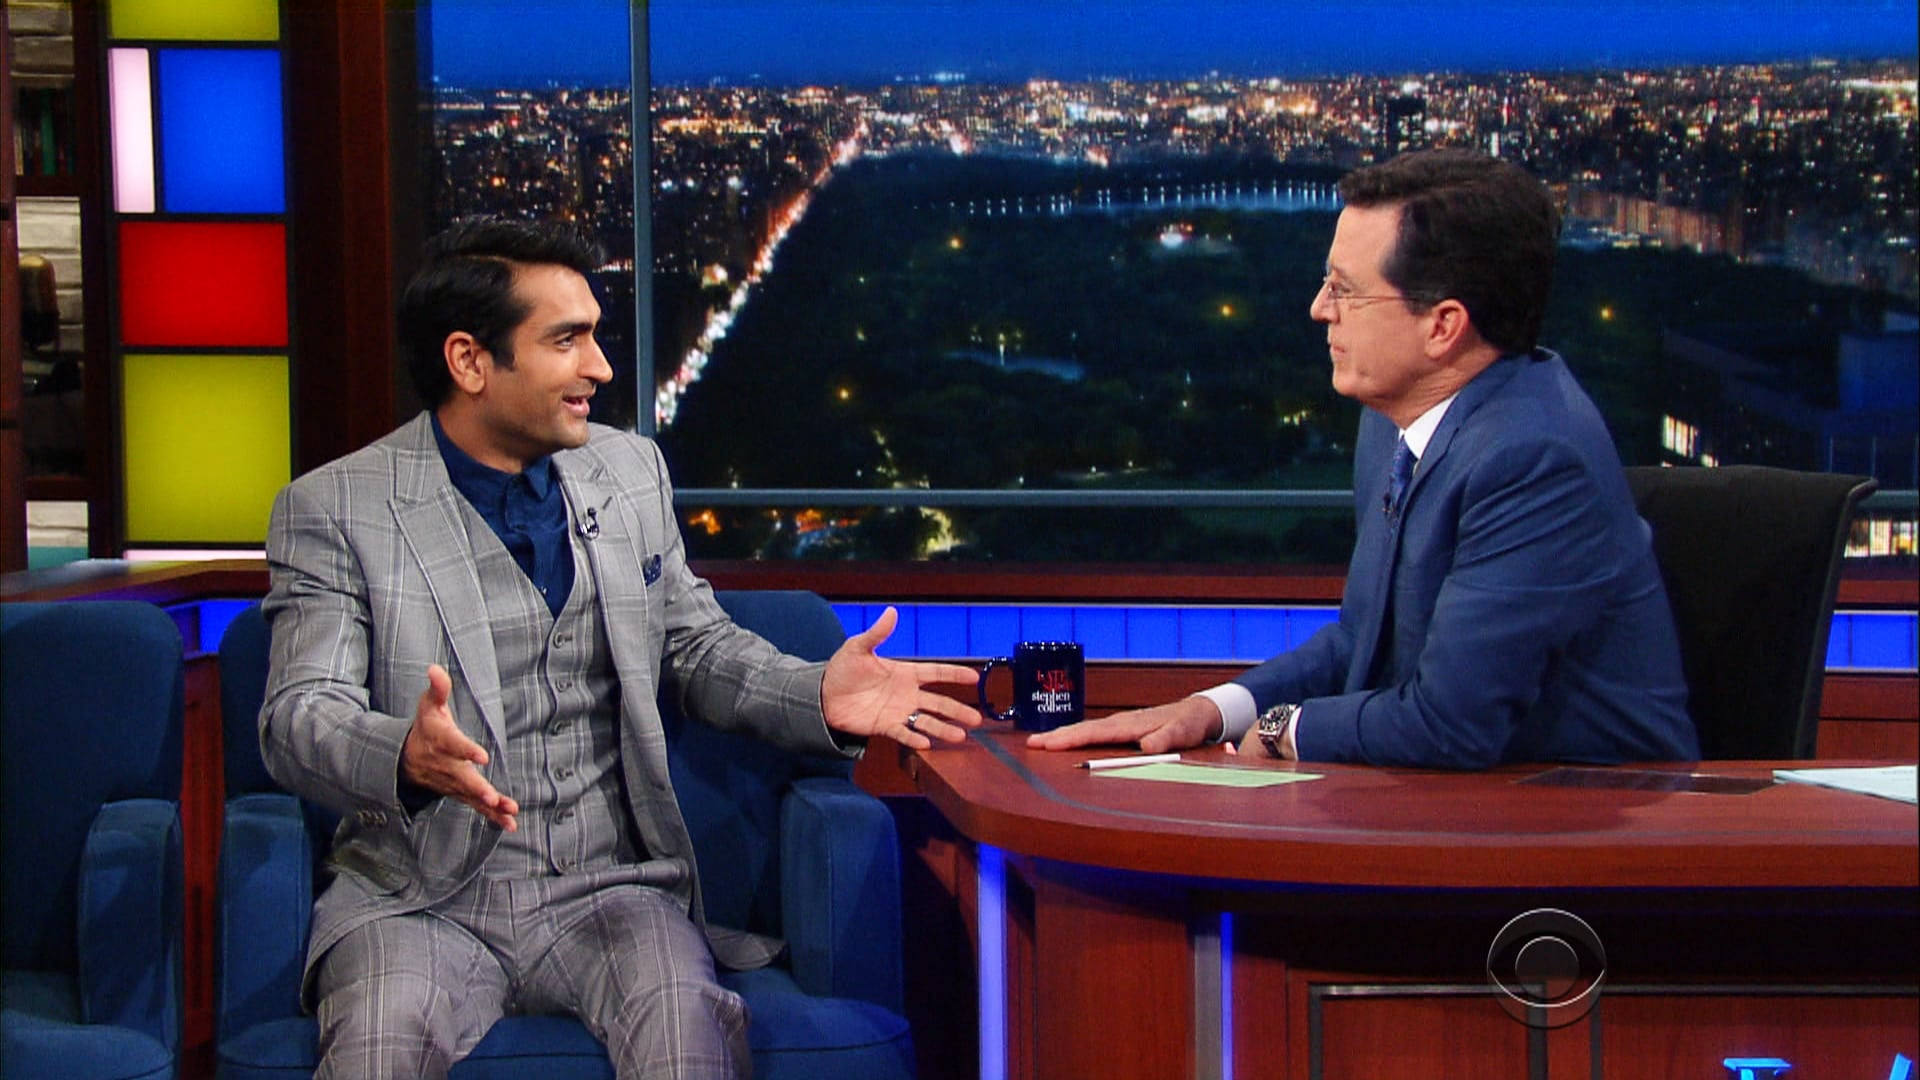 The Late Show with Stephen Colbert - Season 1 Episode 137 : Lily Tomlin, Kumail Nanjiani, Ryan Hamilton